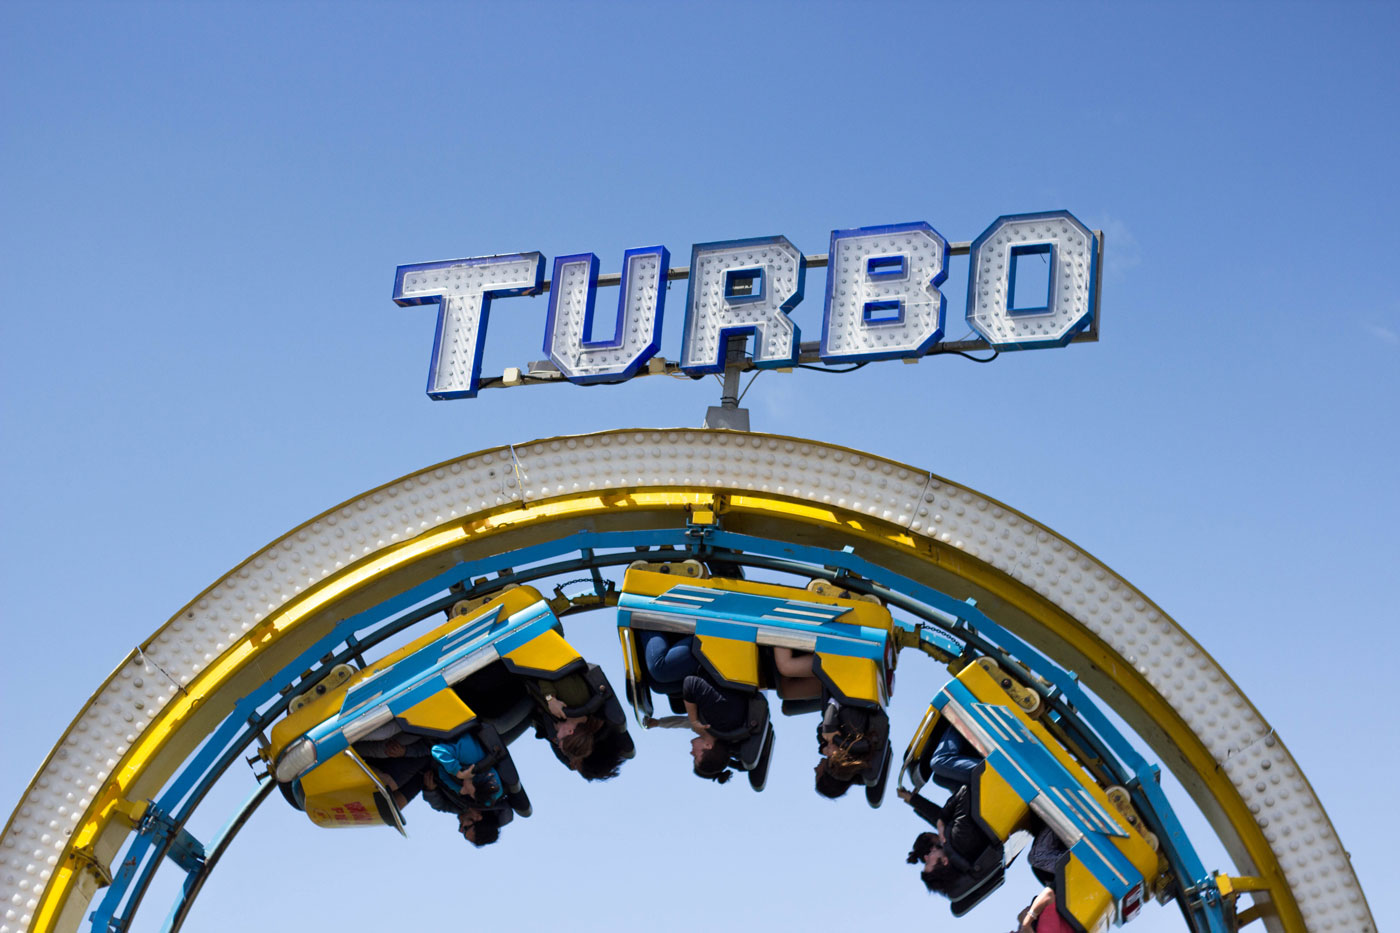 Turbo rollercoaster stopped upside down at funfair